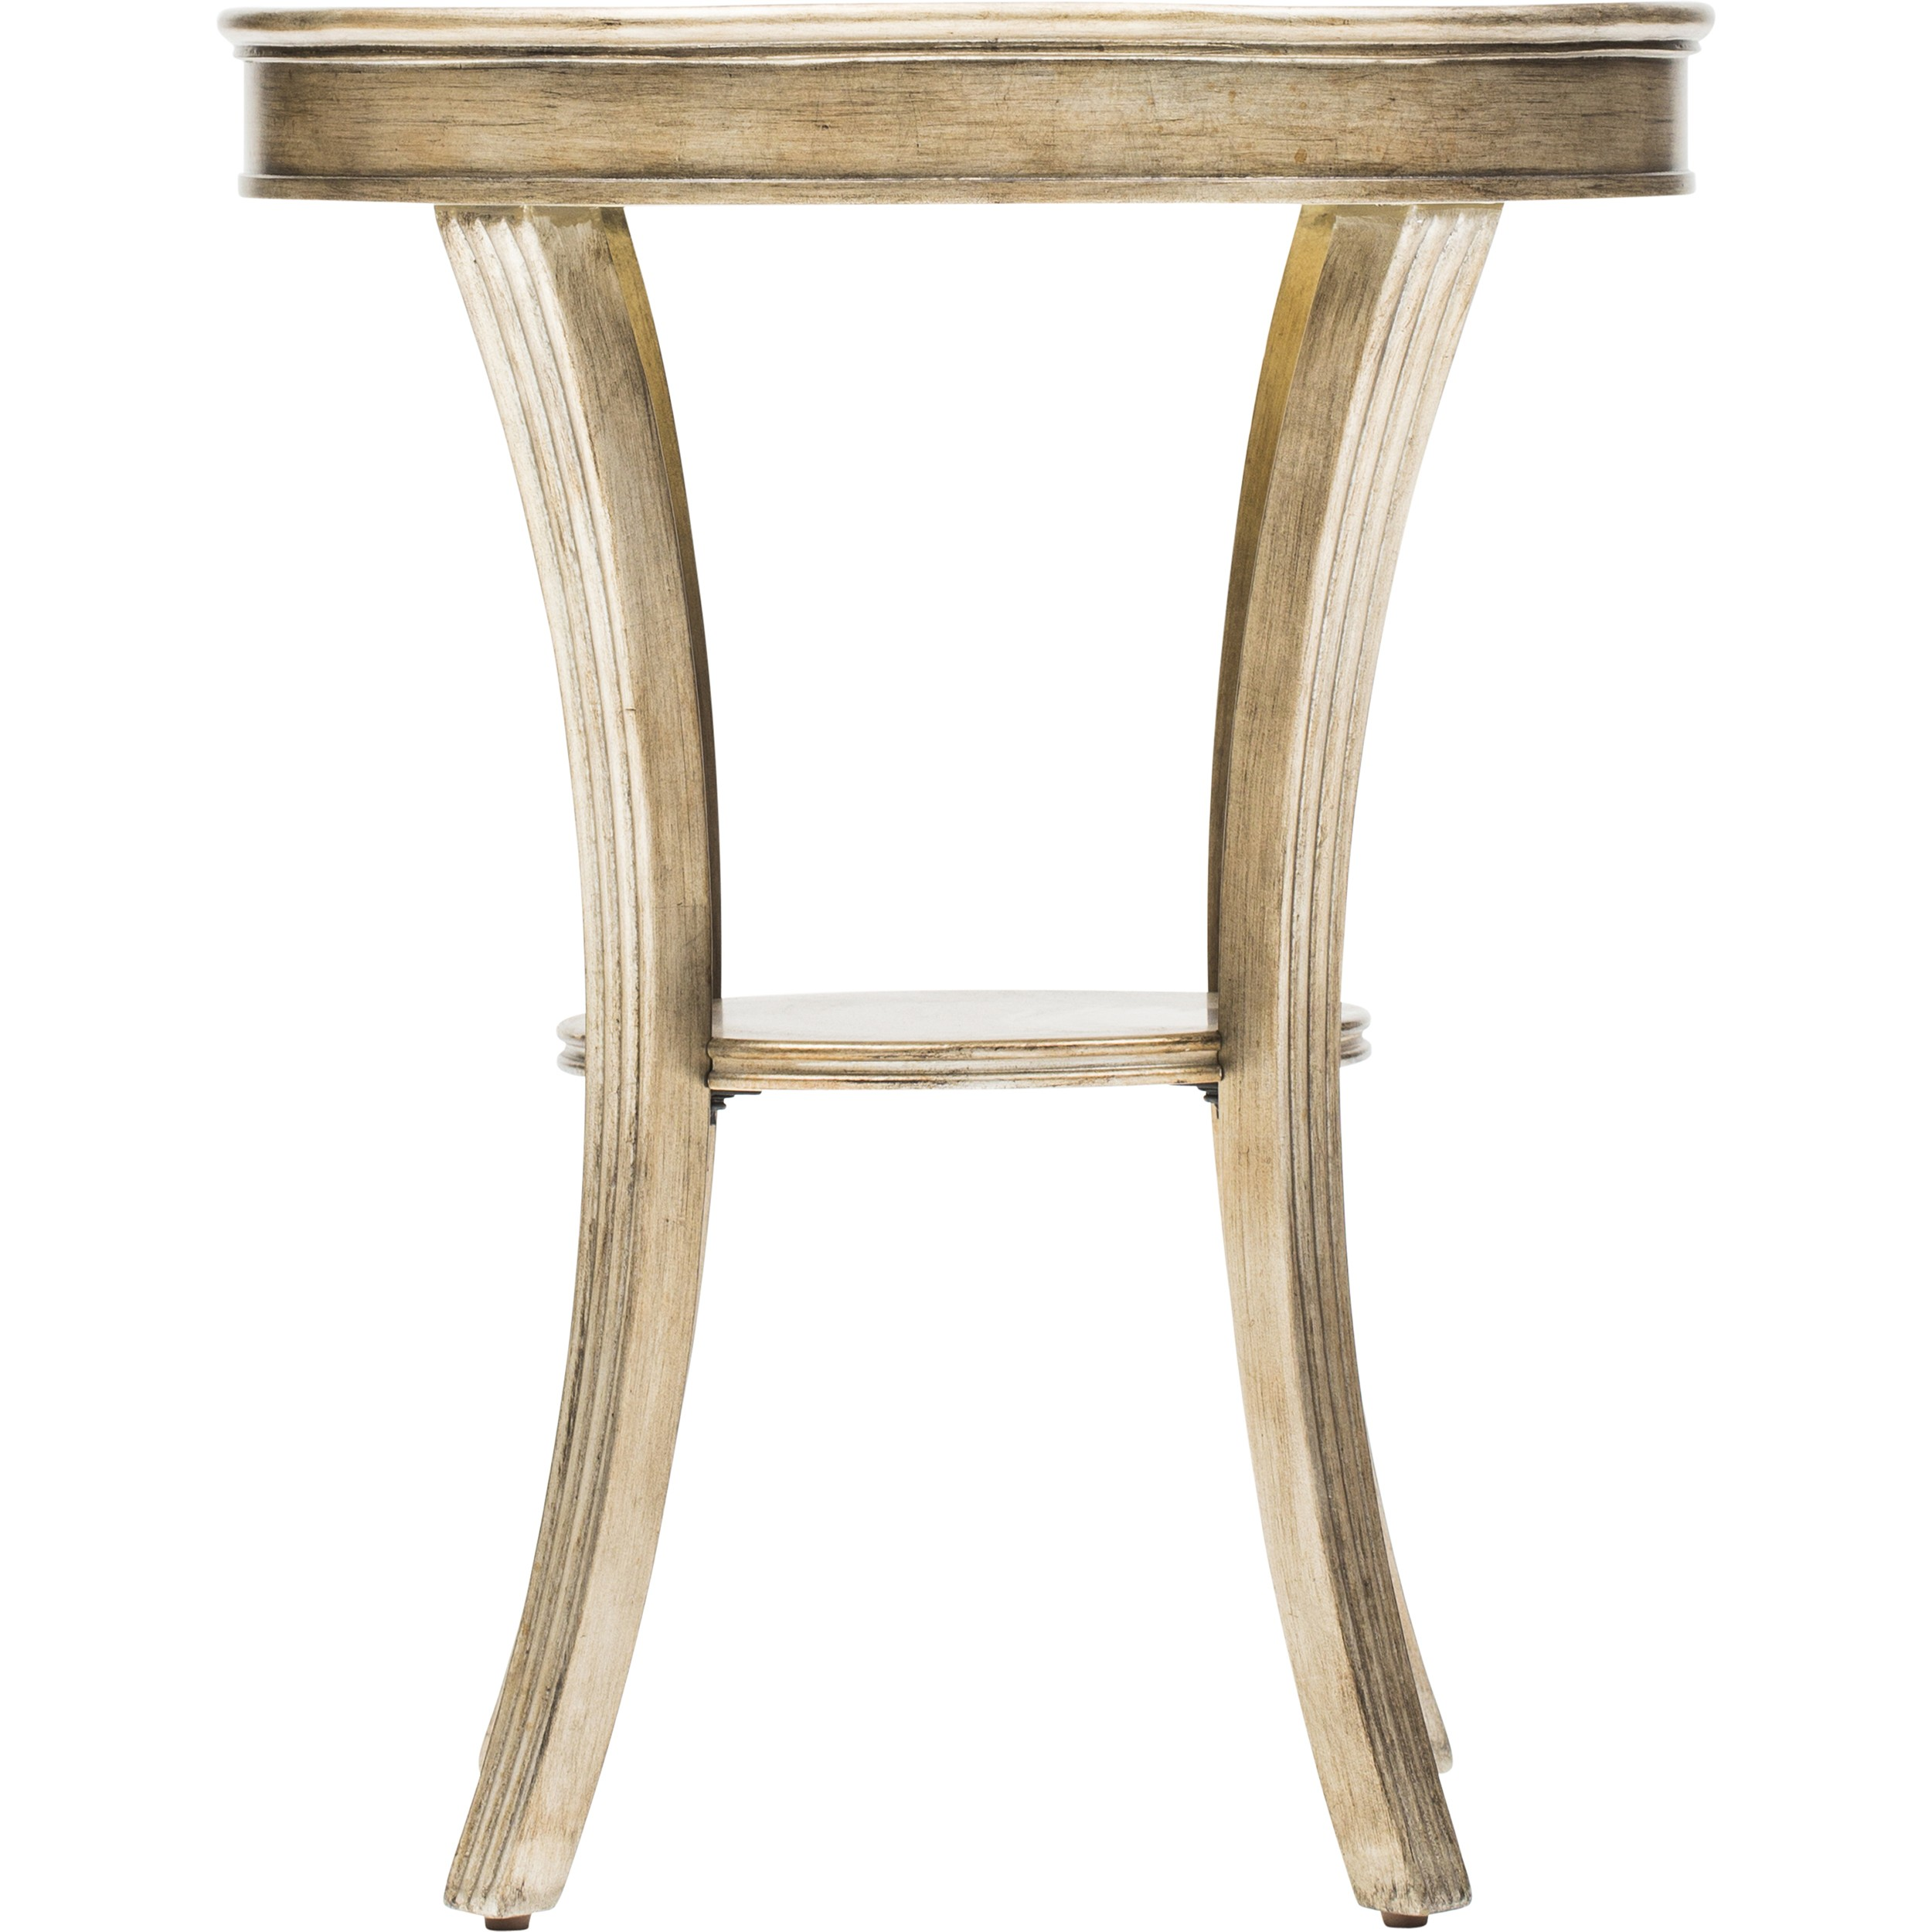 round mirror accent table end tables furniture with clear acrylic sofa side height white bedside kmart drop leaf chairs meyda tiffany lighting unusual for living room pedestal